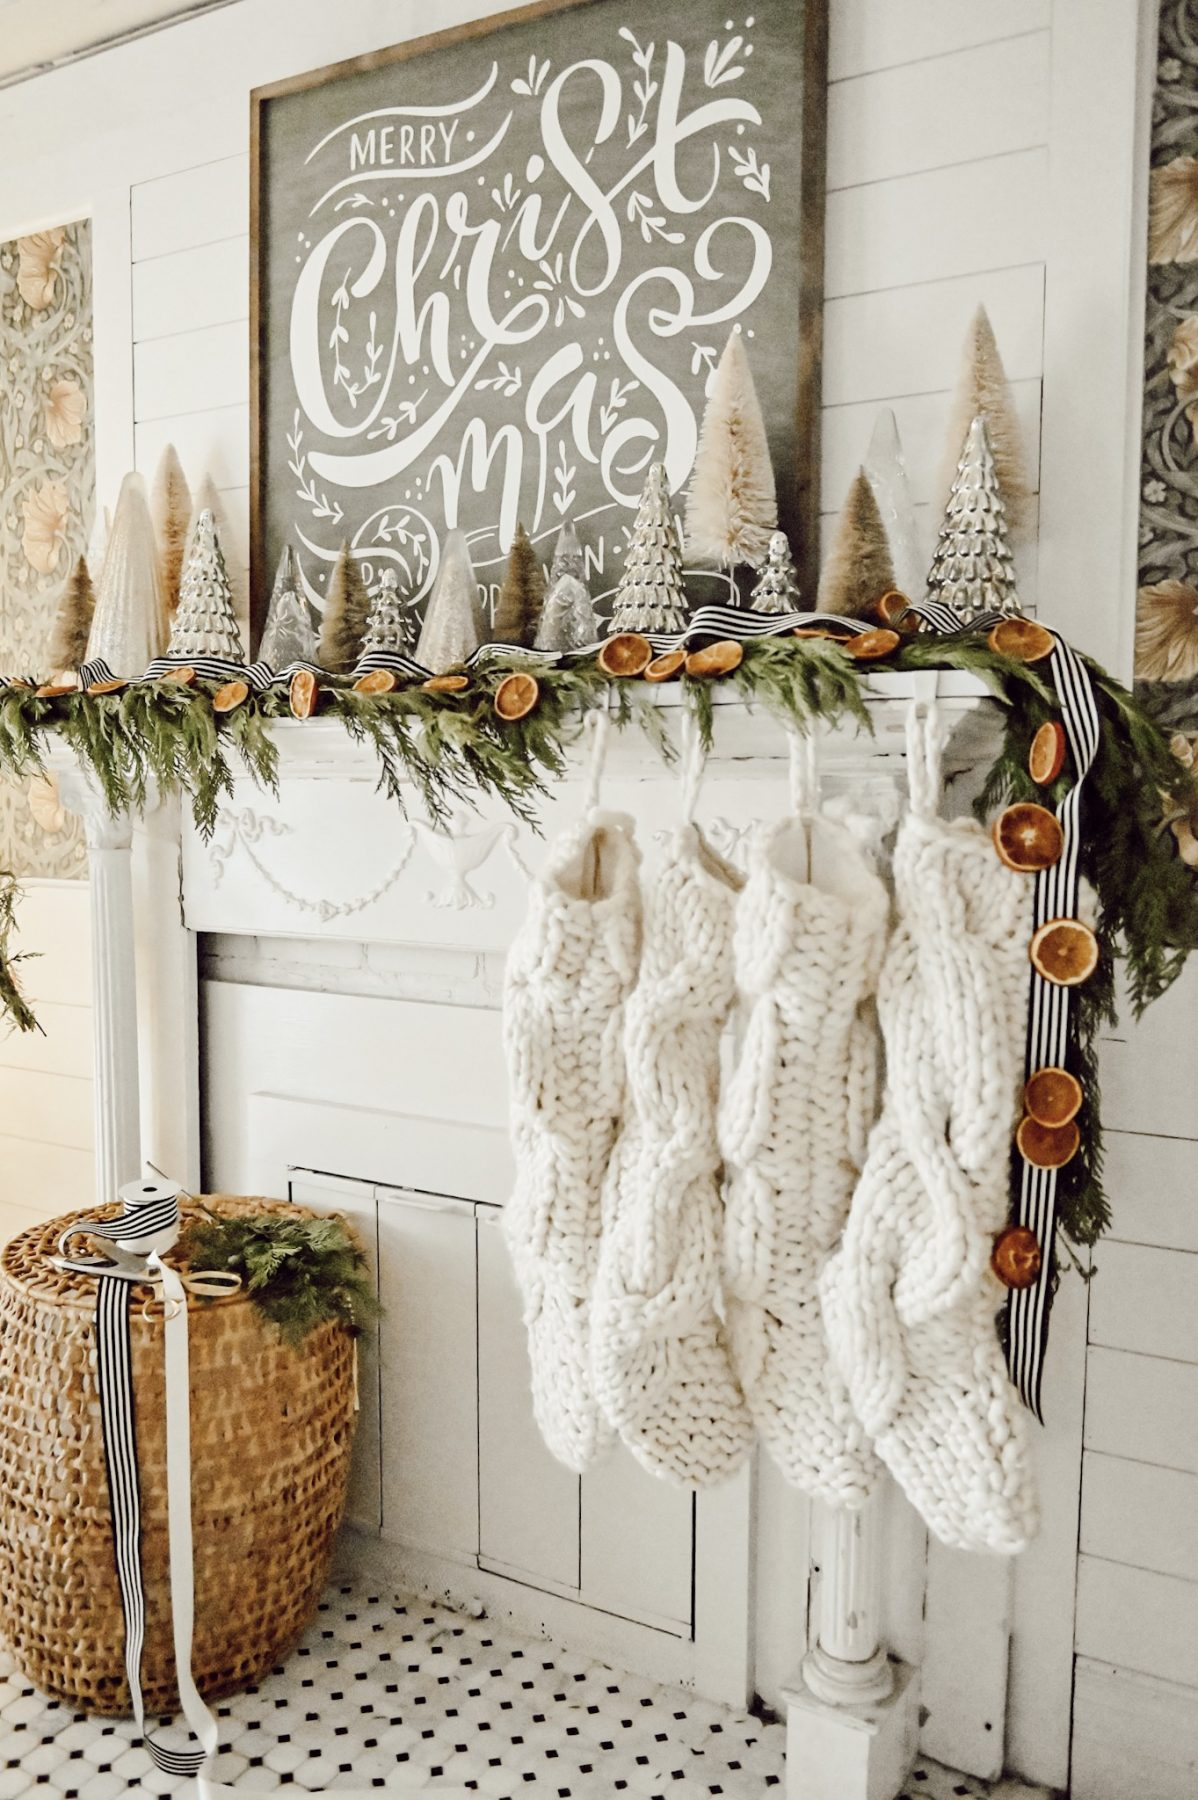 Christmas Mantel Decor with DIY Orange Garland